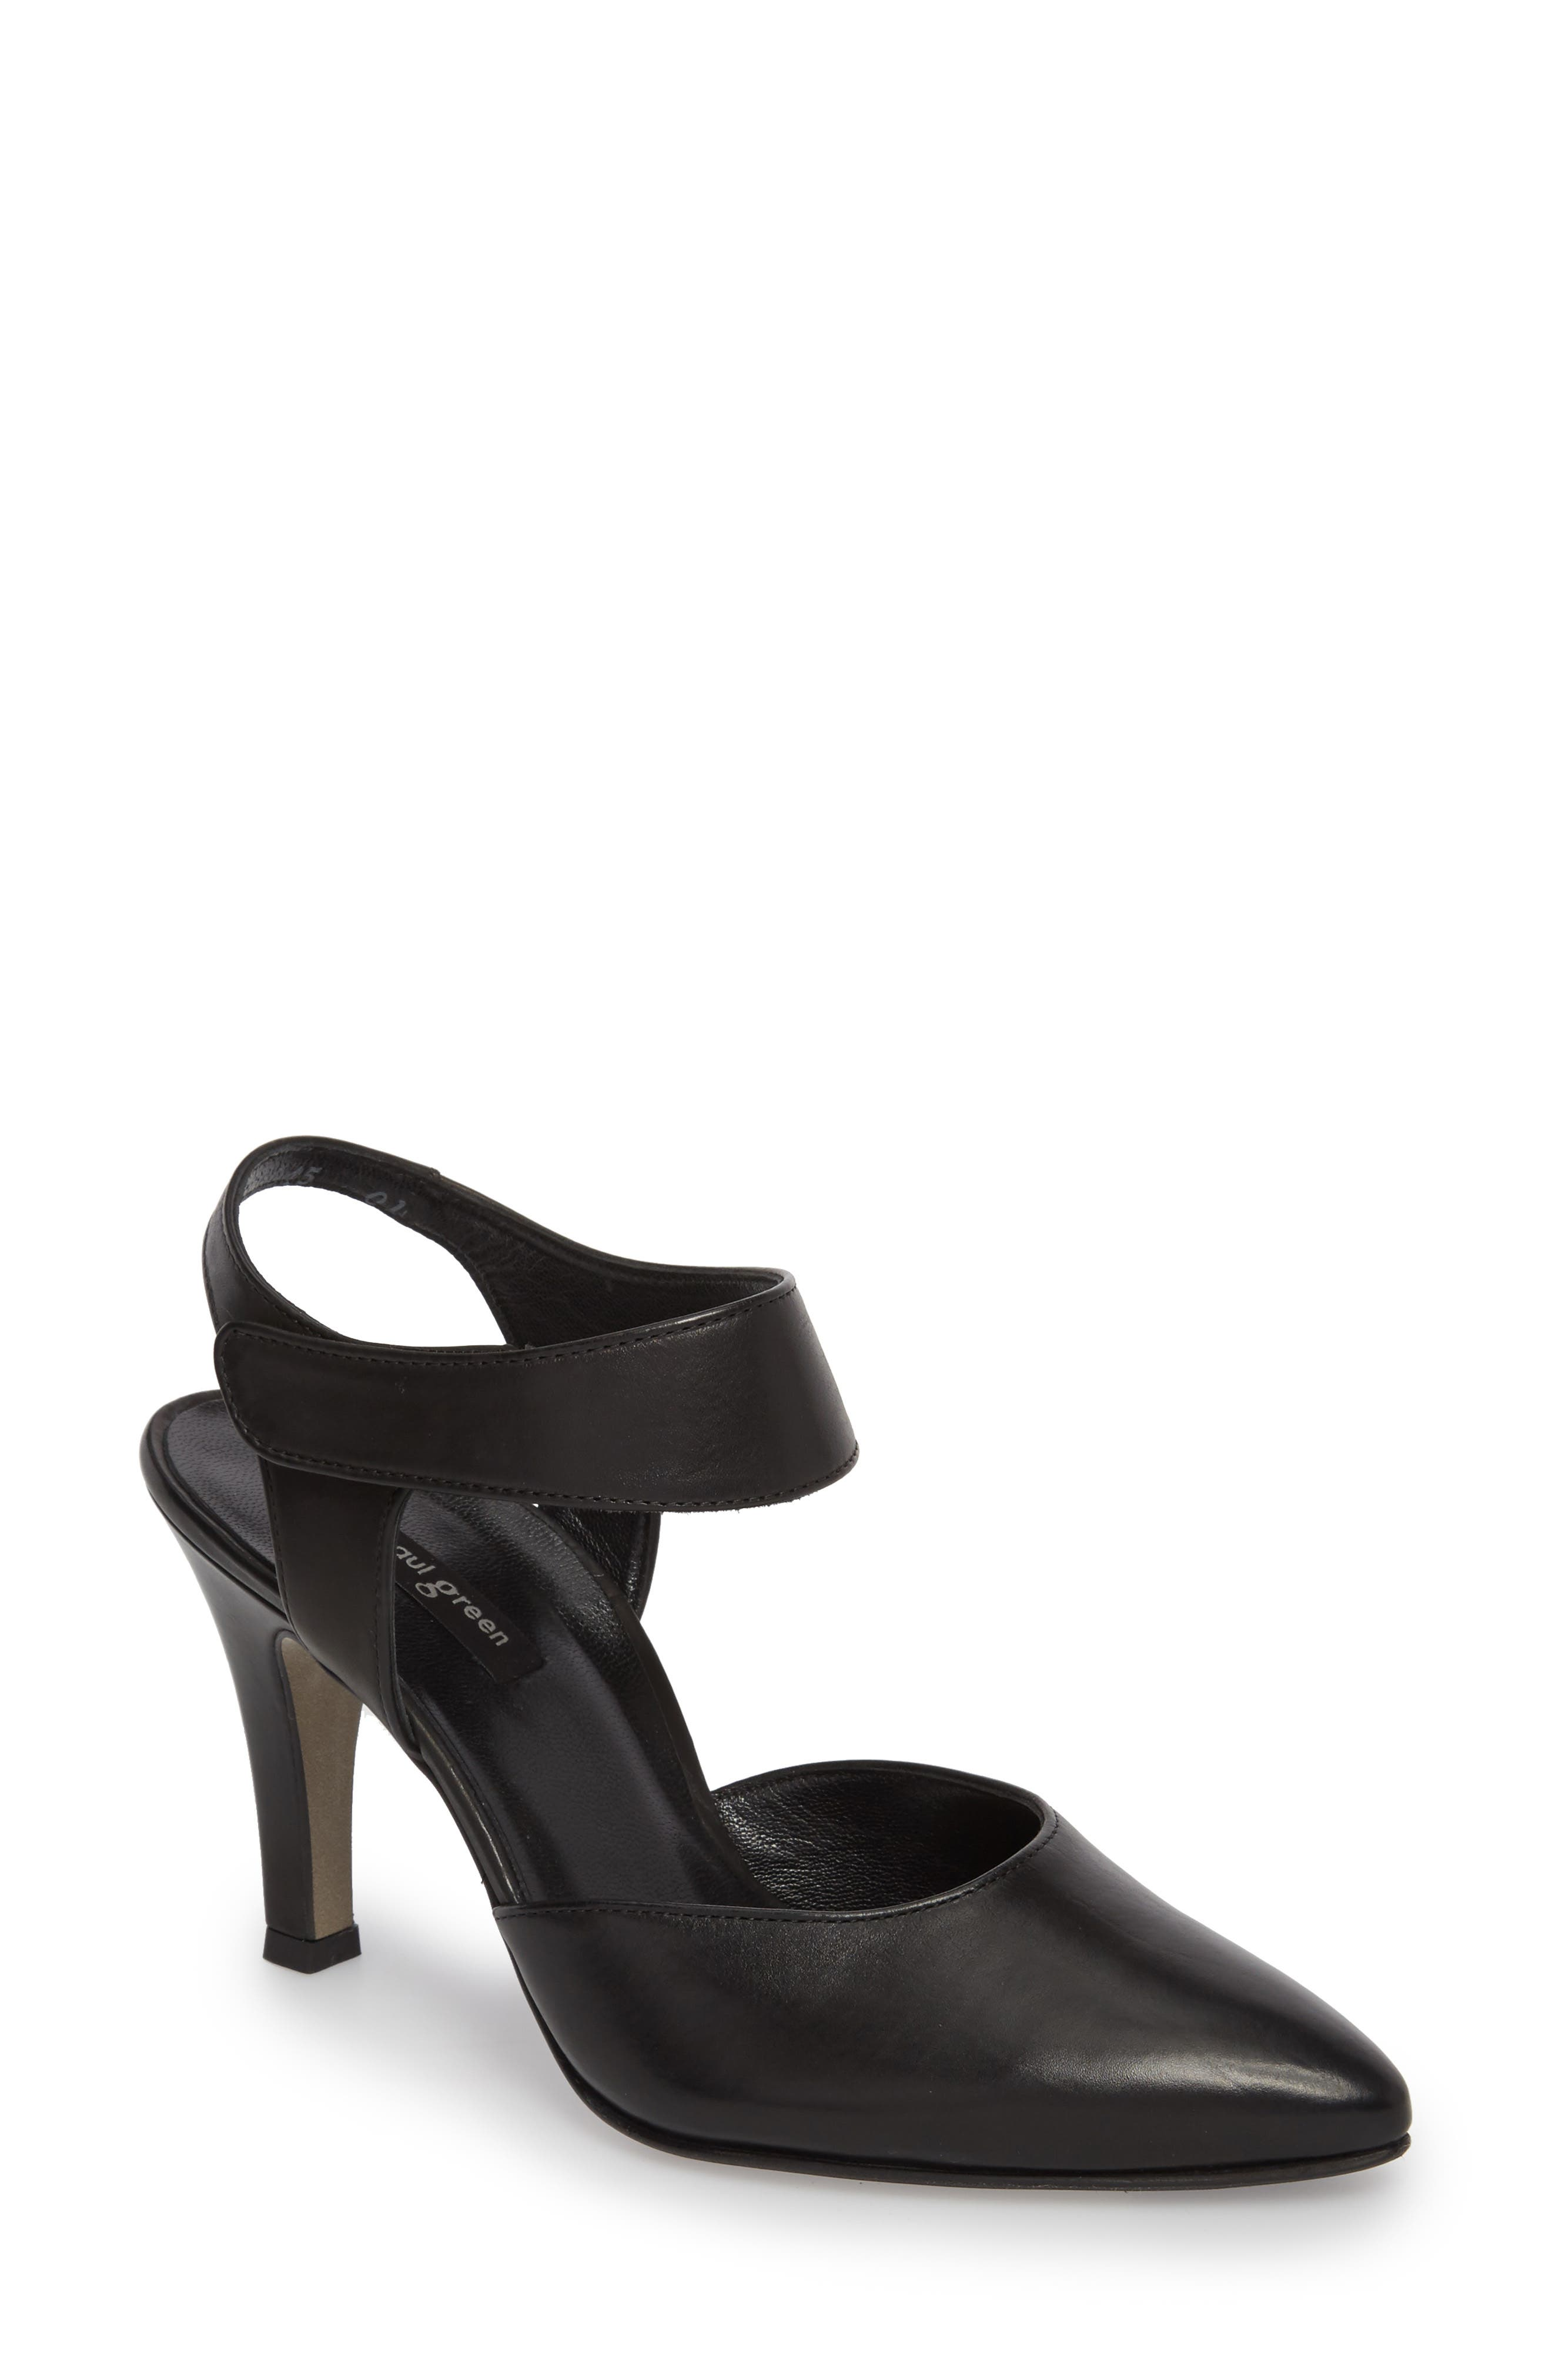 PAUL GREEN, Nicolette Pointy Toe Pump, Main thumbnail 1, color, BLACK LEATHER